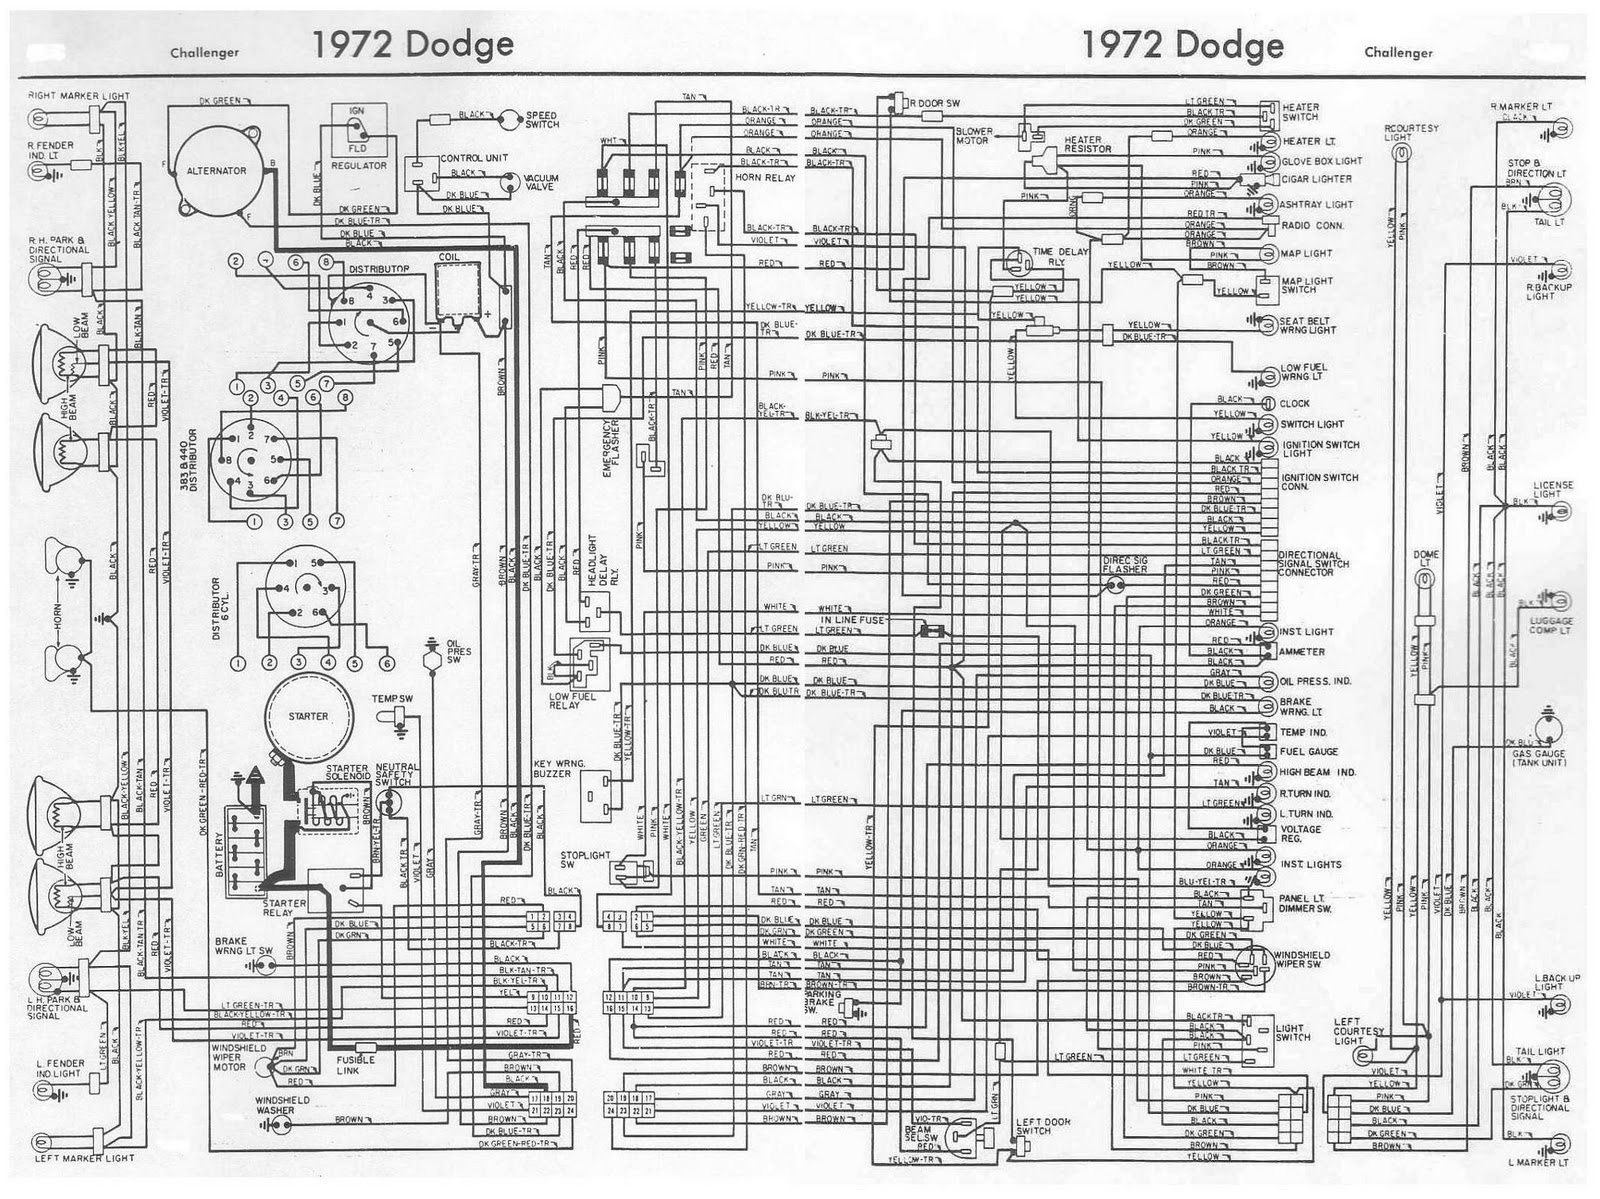 √ 1972 dodge challenger wiring diagram diagram 2010 dodge Palfinger Wiring Diagrams